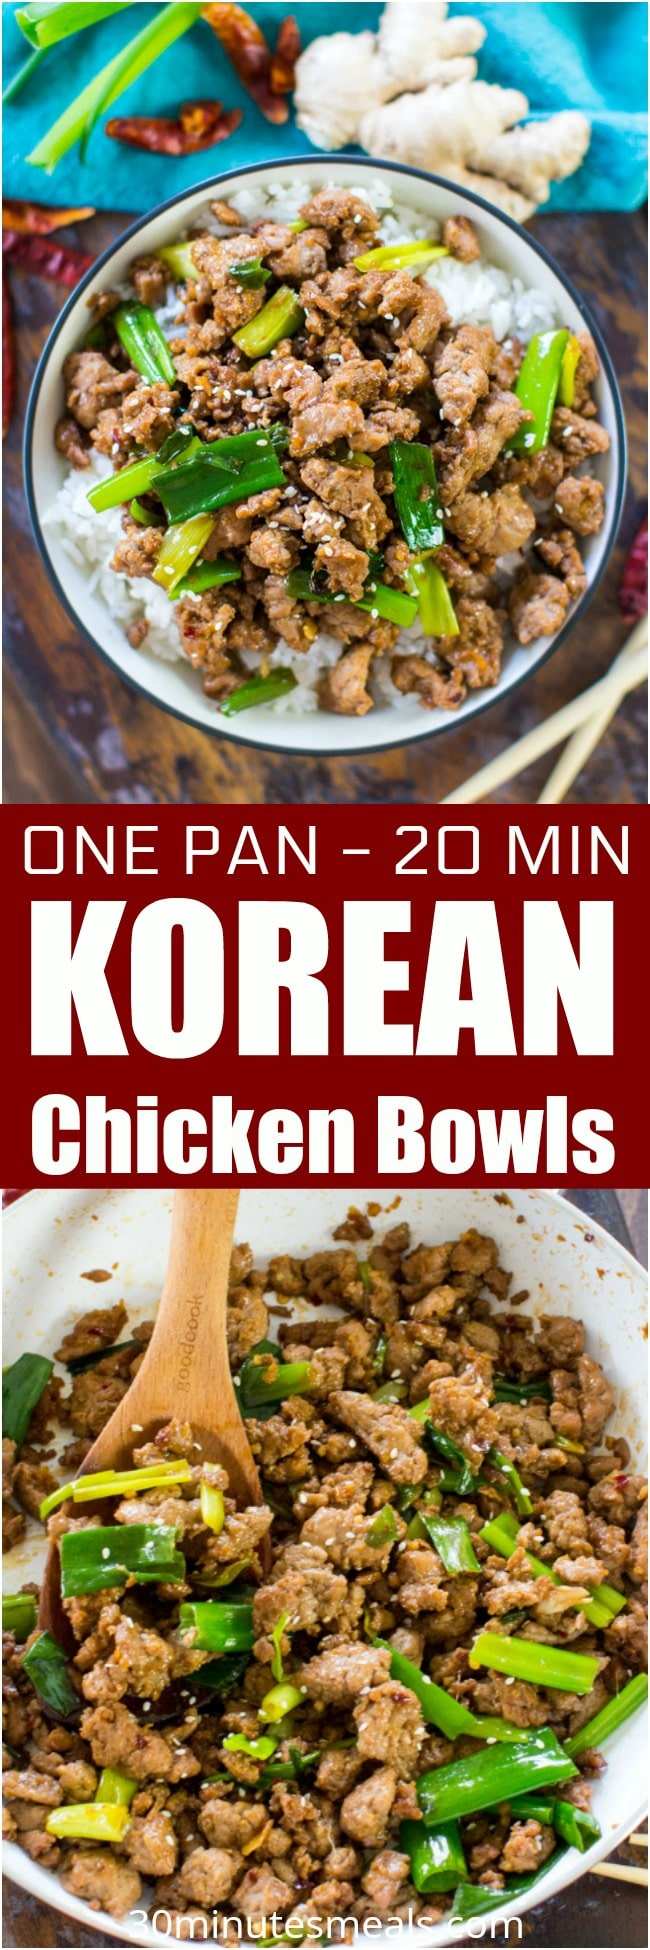 One Pan Korean Chicken Bowls are one of the easiest and tastiest dishes you can make in just under 20 minutes.